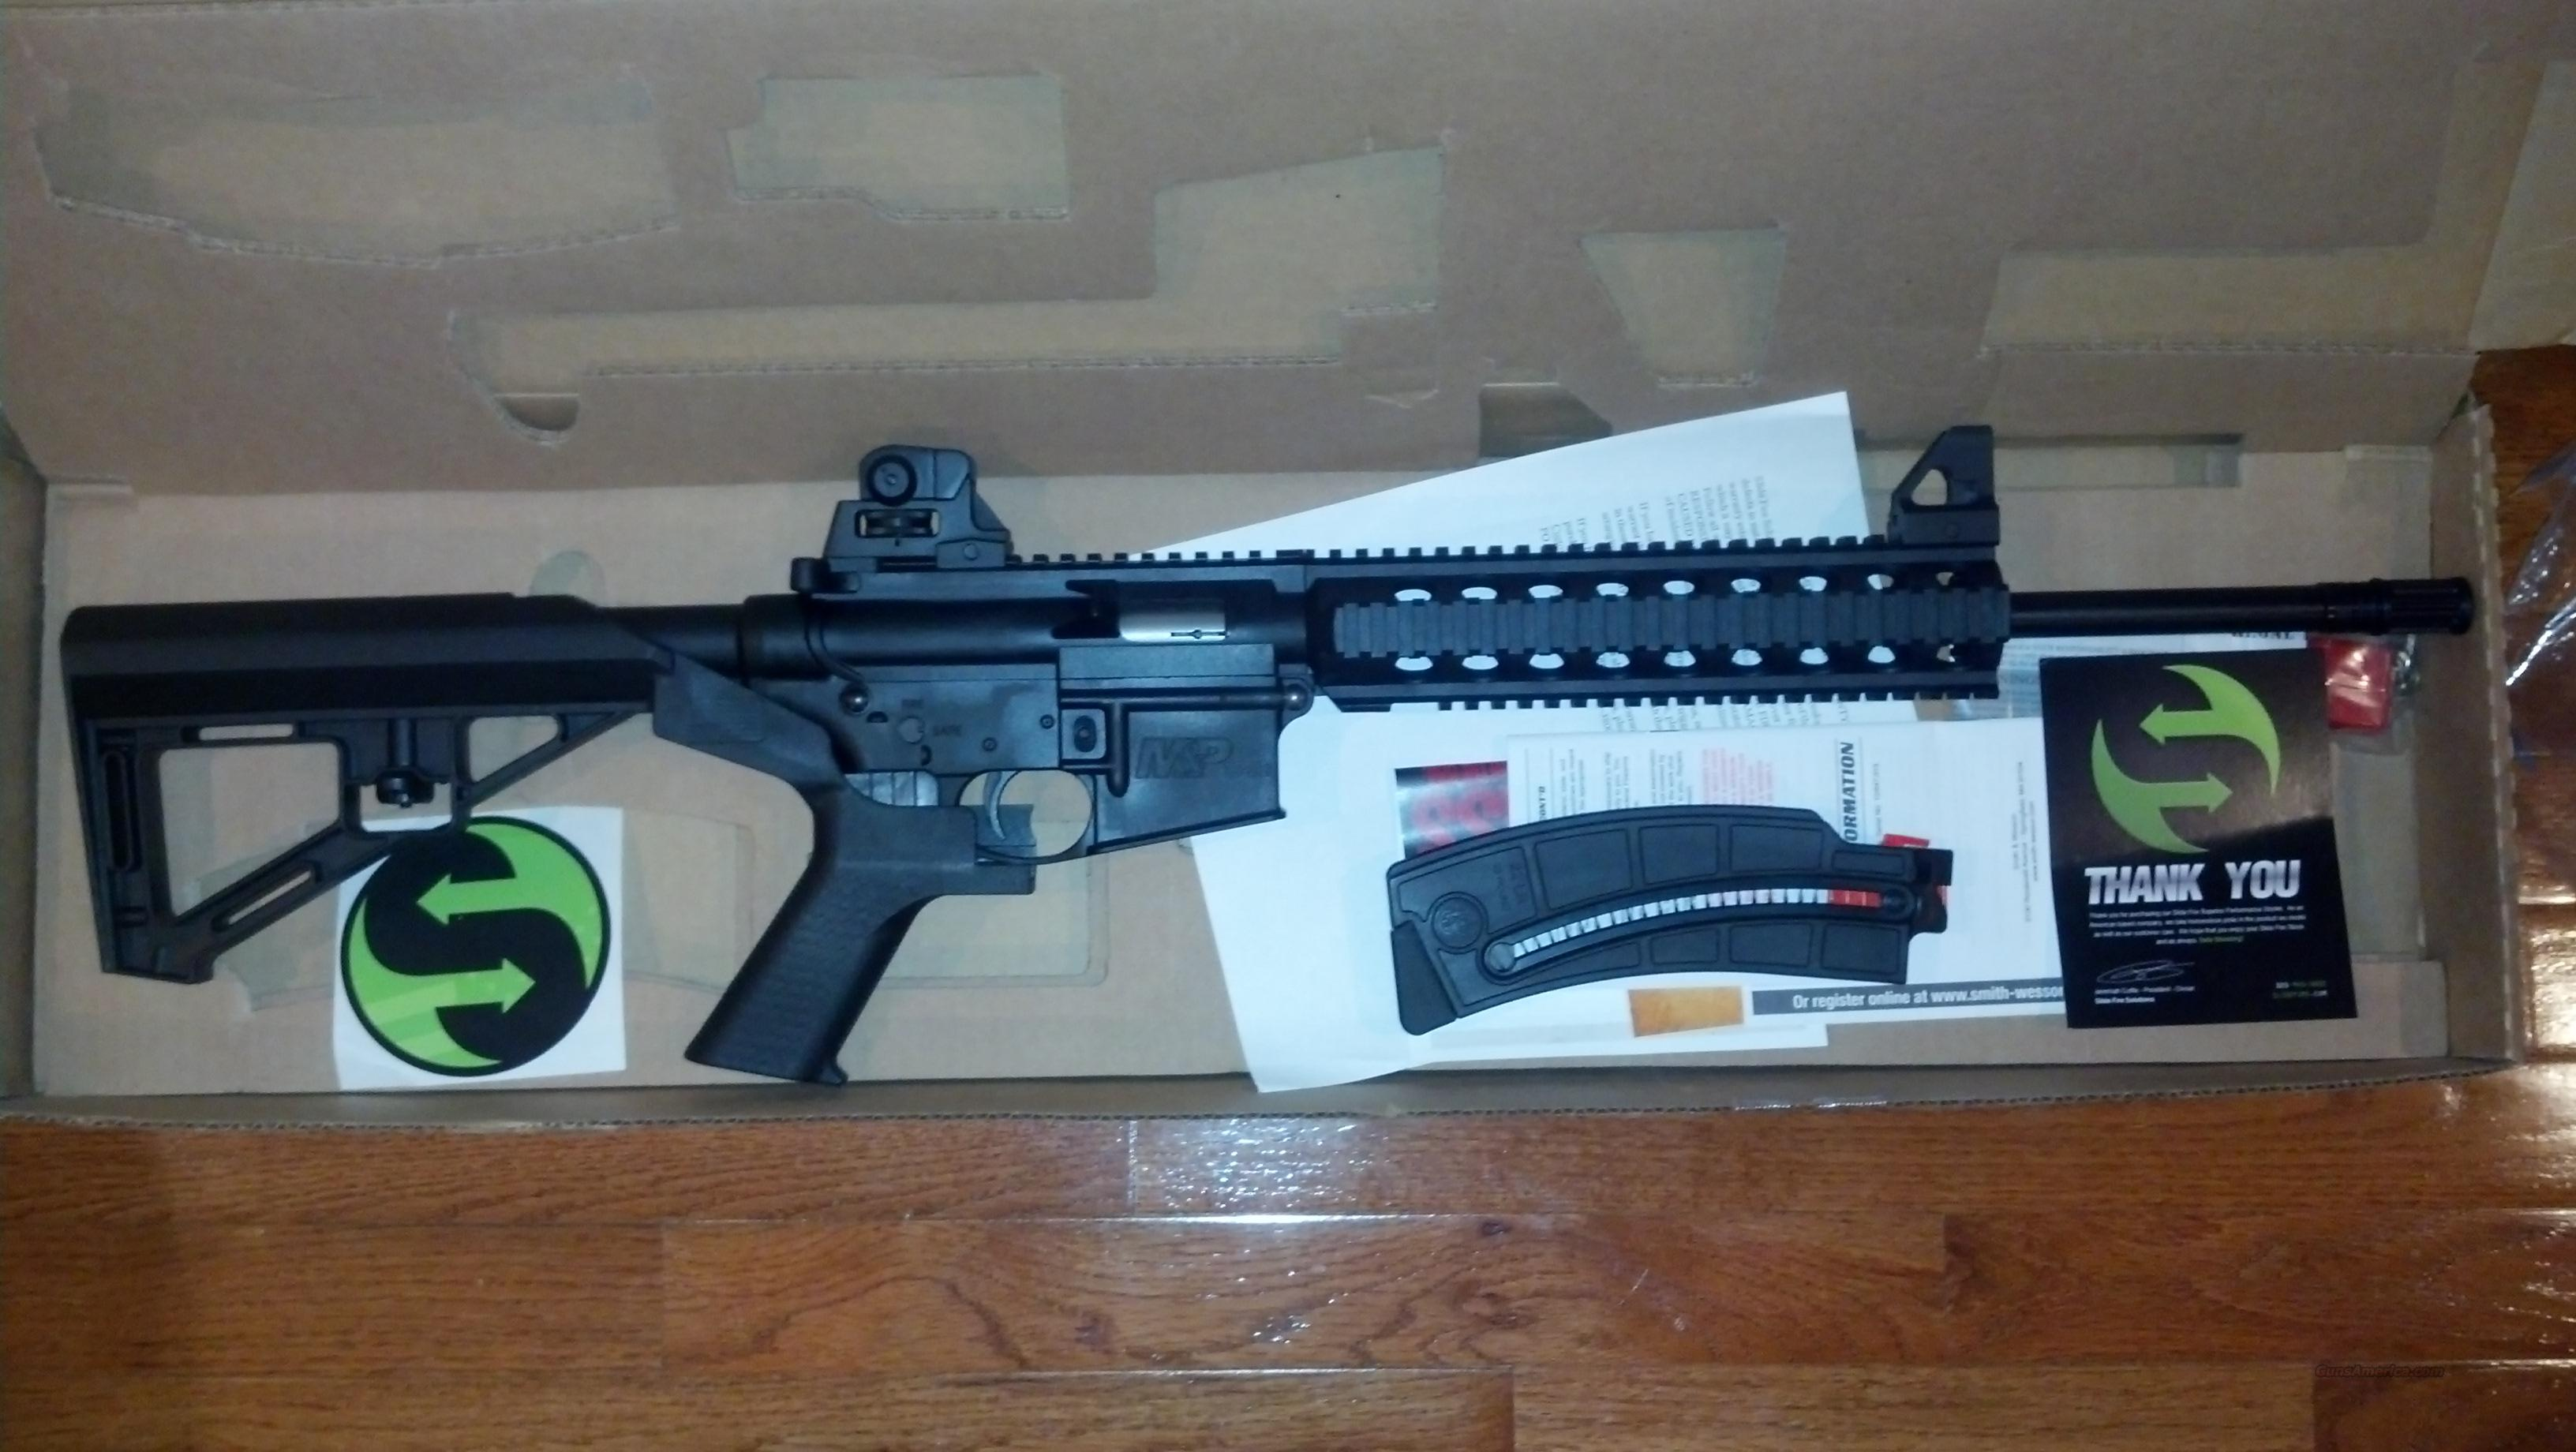 Smith & Wesson M&P 15 22 modified by Slide Fire Solutions   Guns > Rifles > Smith & Wesson Rifles > M&P